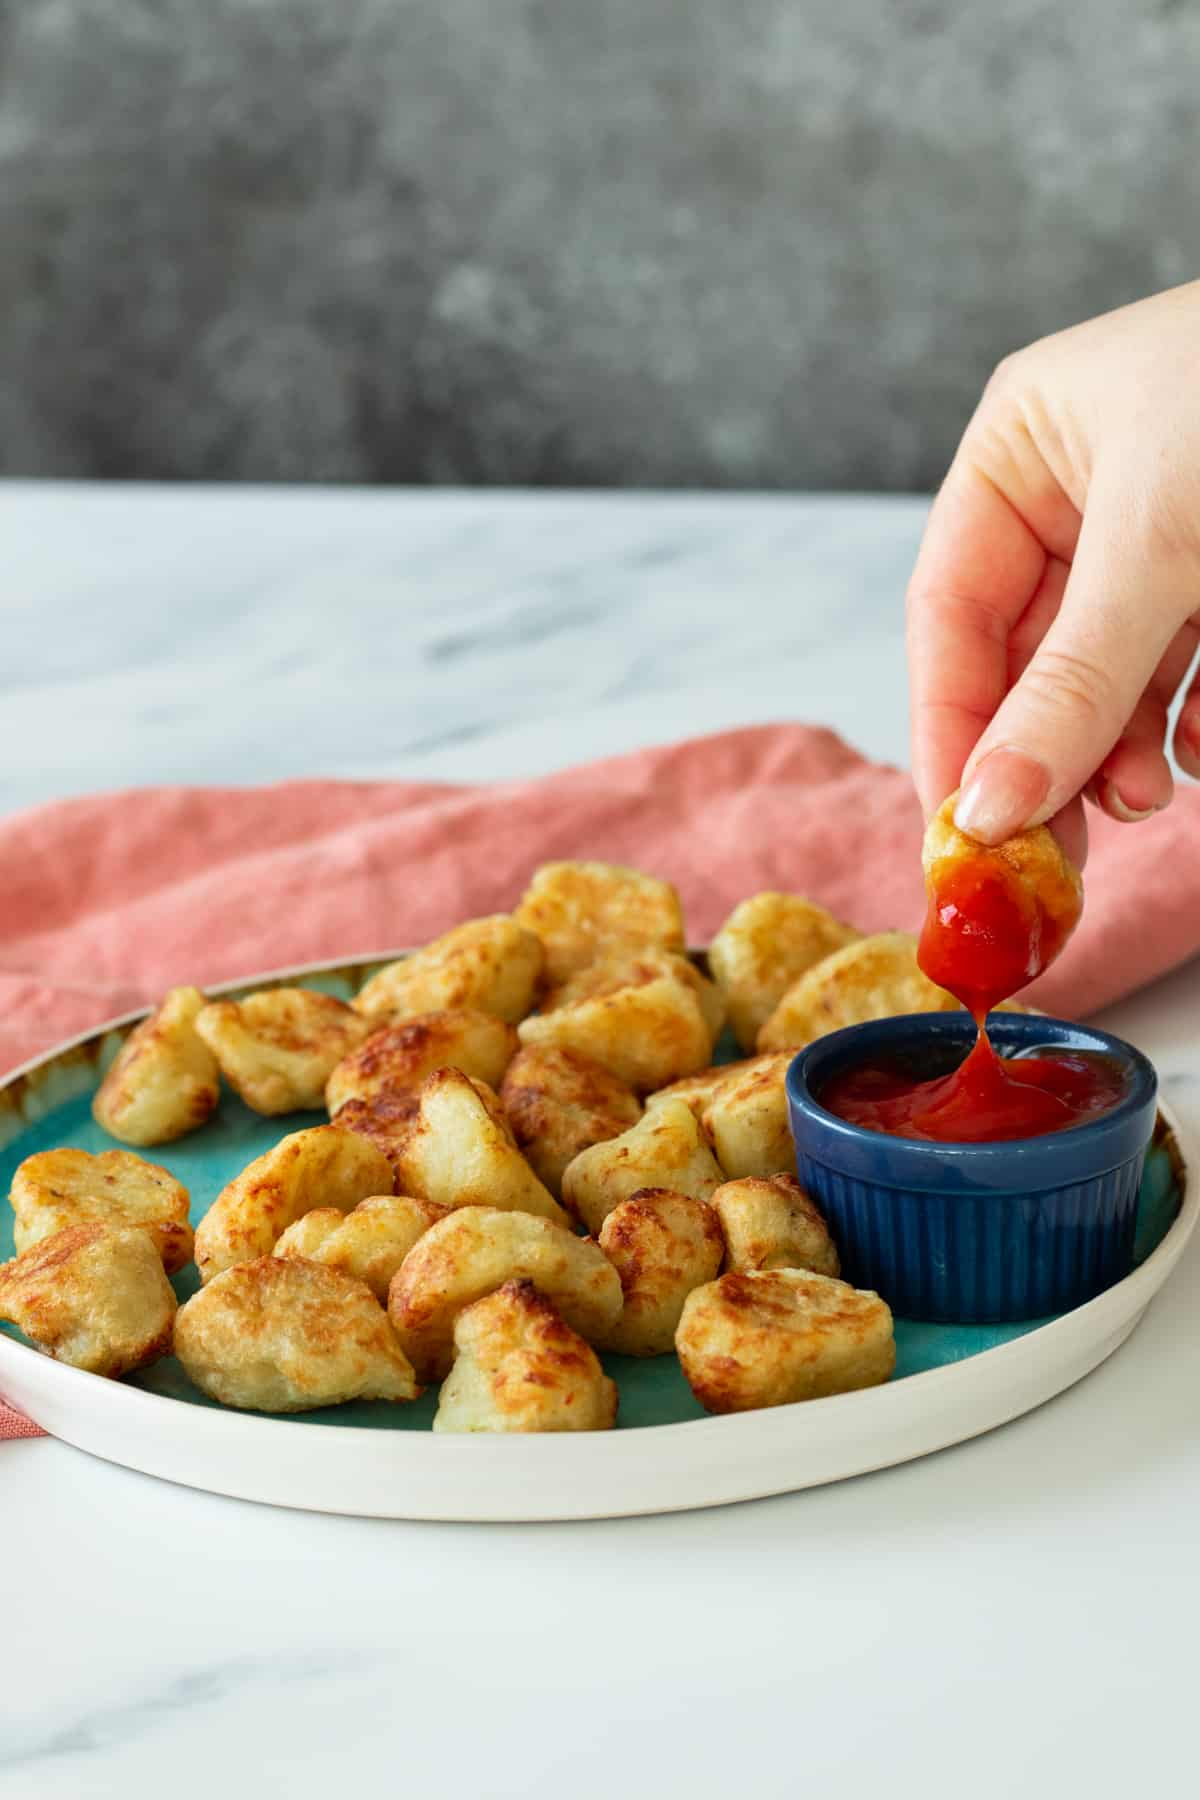 a tater tot dipped in ketchup